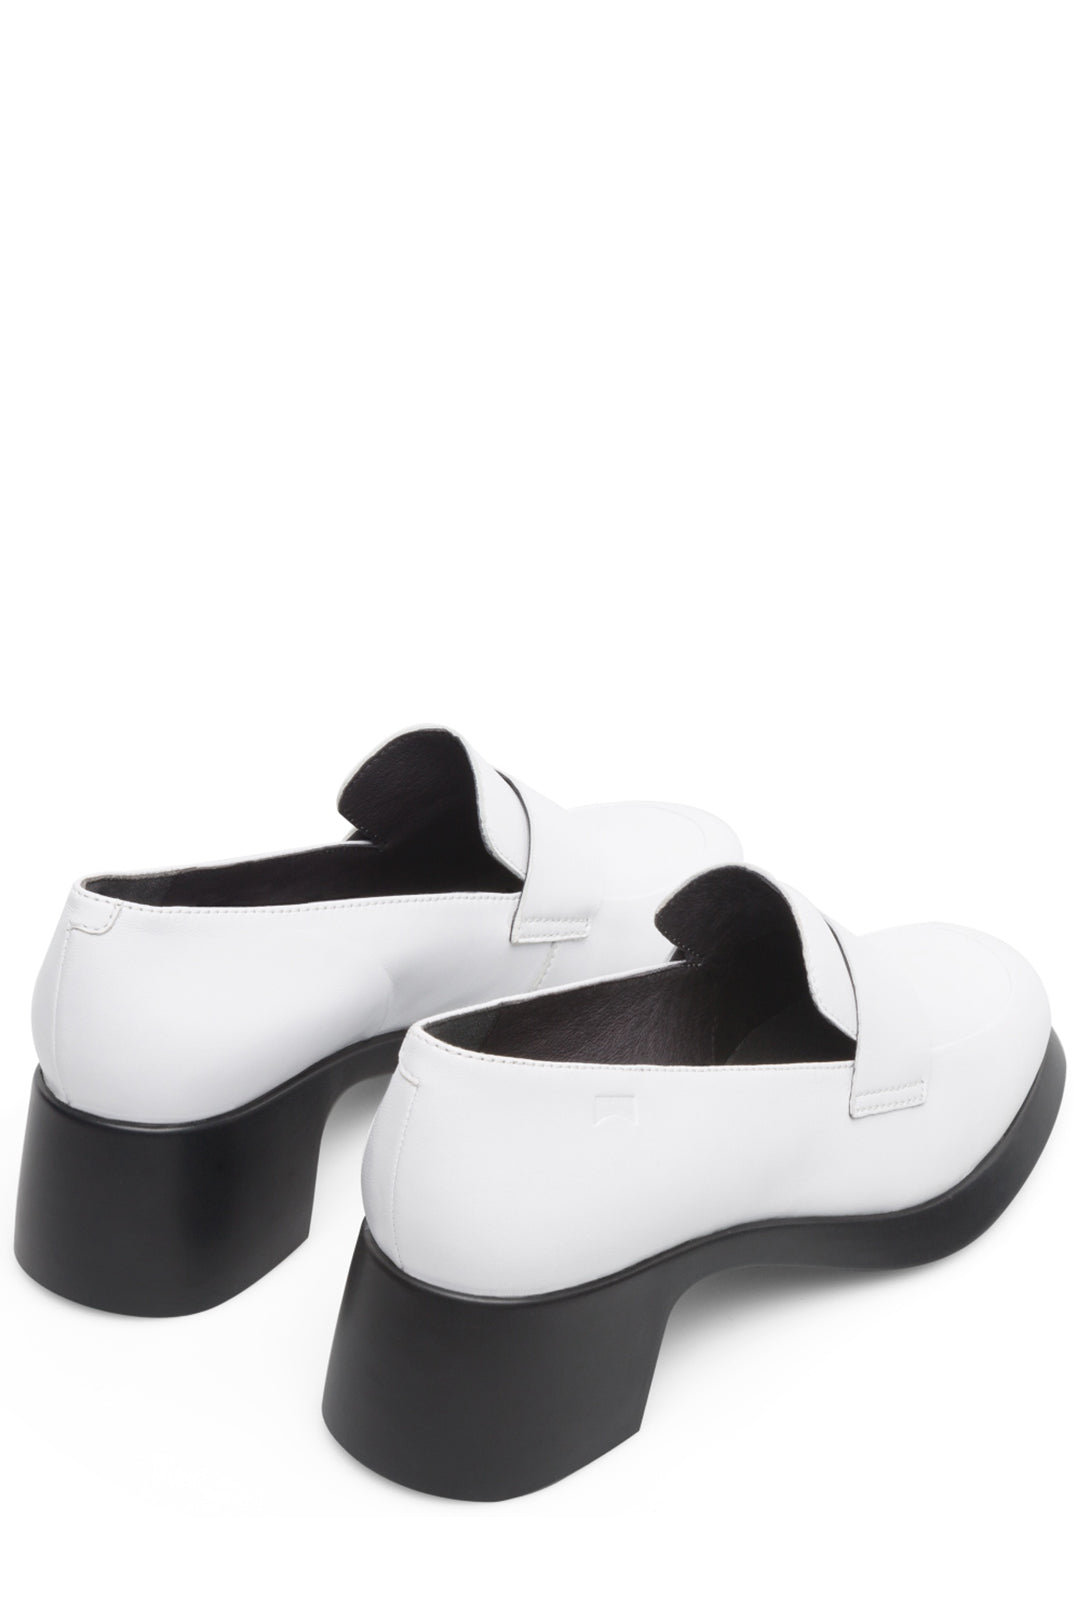 Camper Trisha Loafer, White